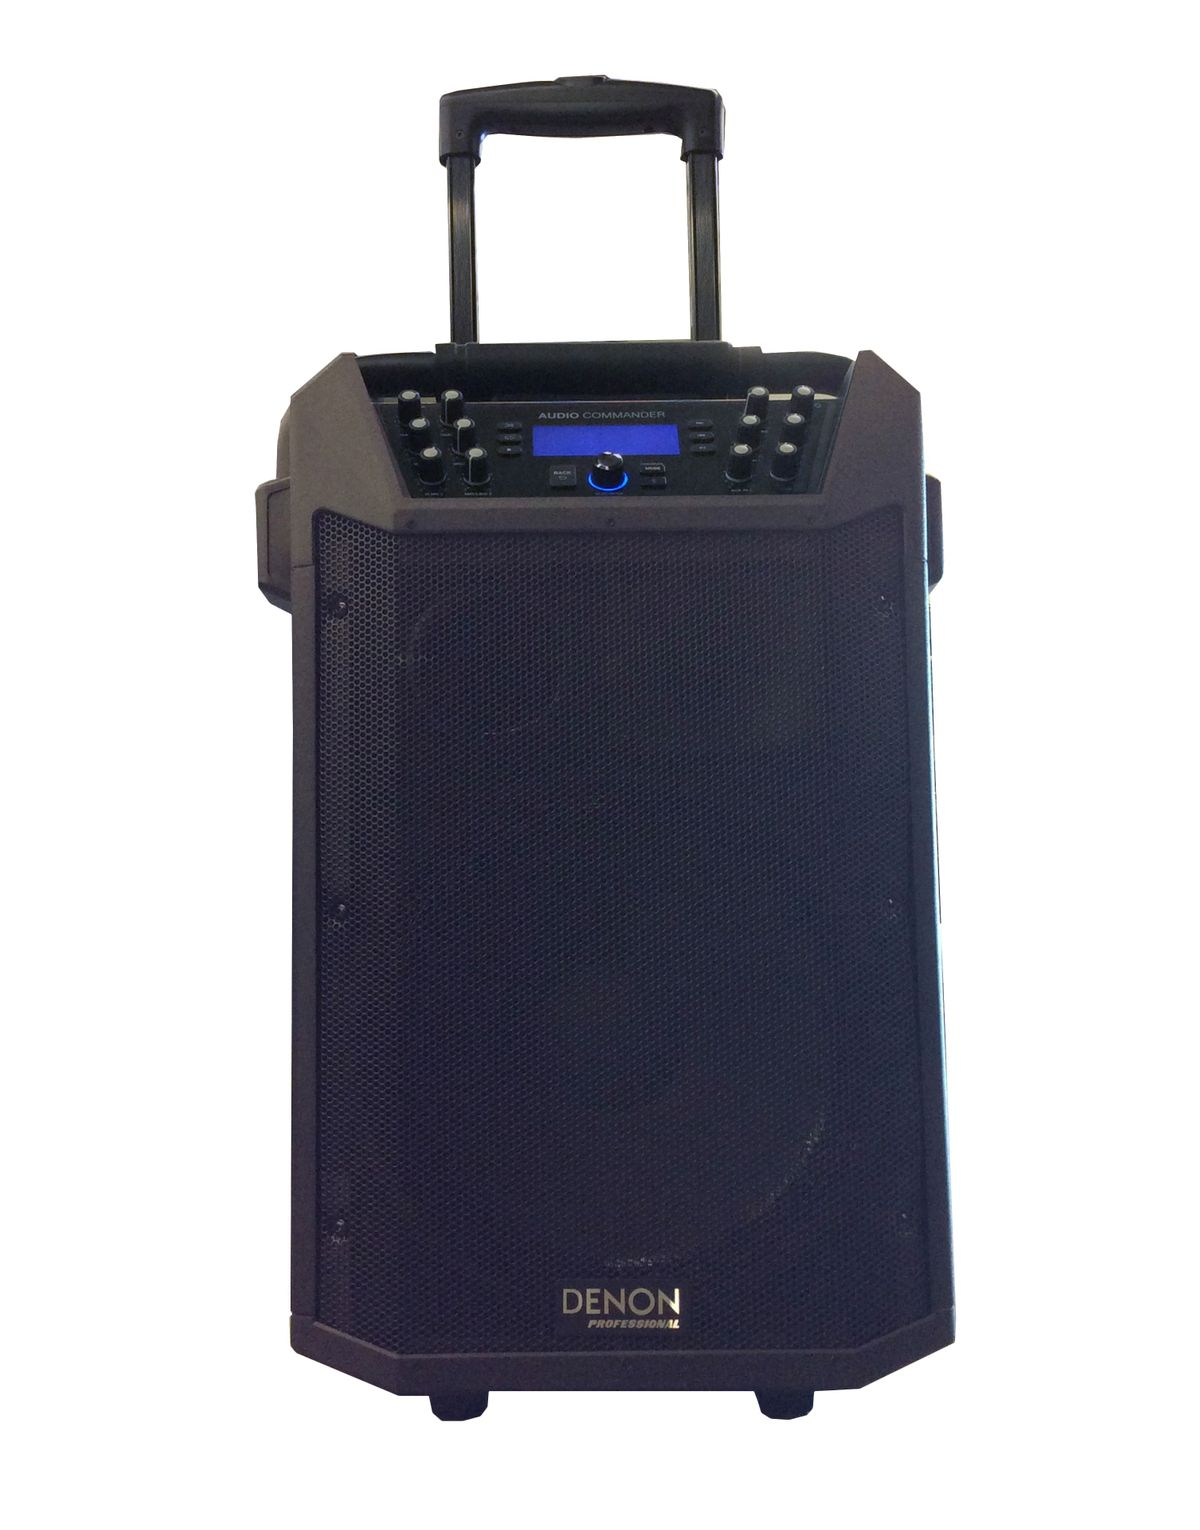 The DENON Pro Audio Commander Portable PA System is available at Hollywood Sound Systems